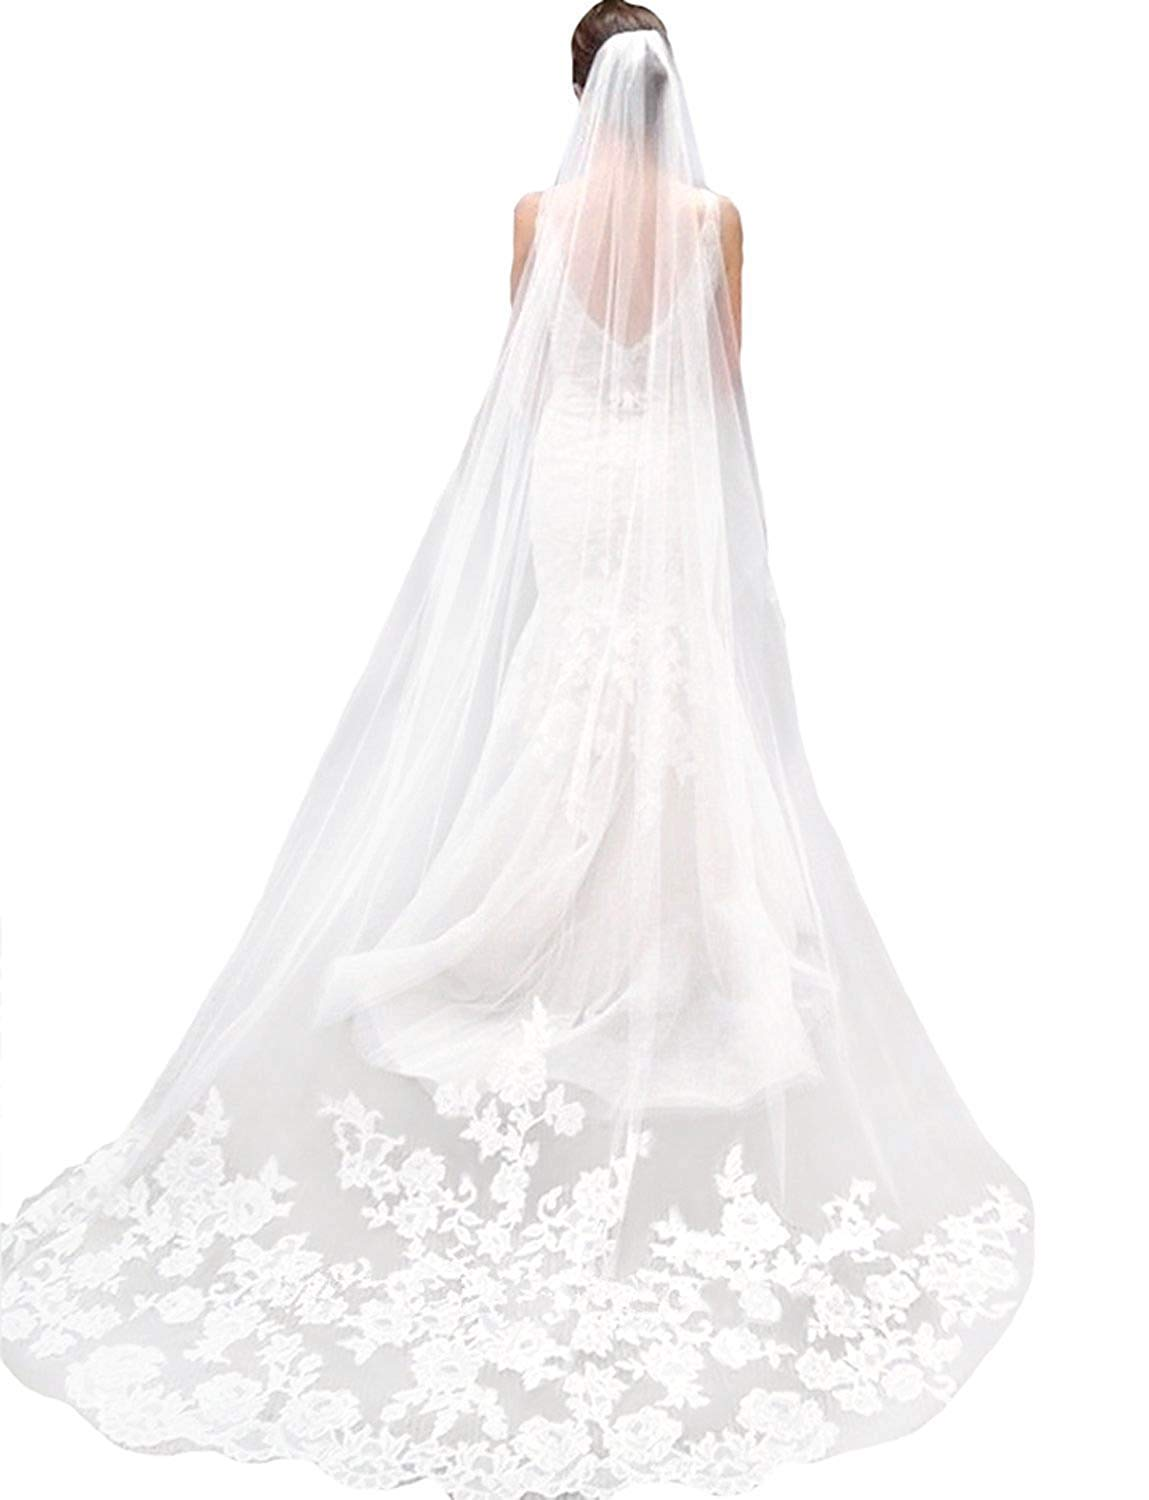 Sisjuly Women's 1T Floral Appliques Lace Chapel Long Wedding Veil with Comb One Size Ivory by Sisjuly